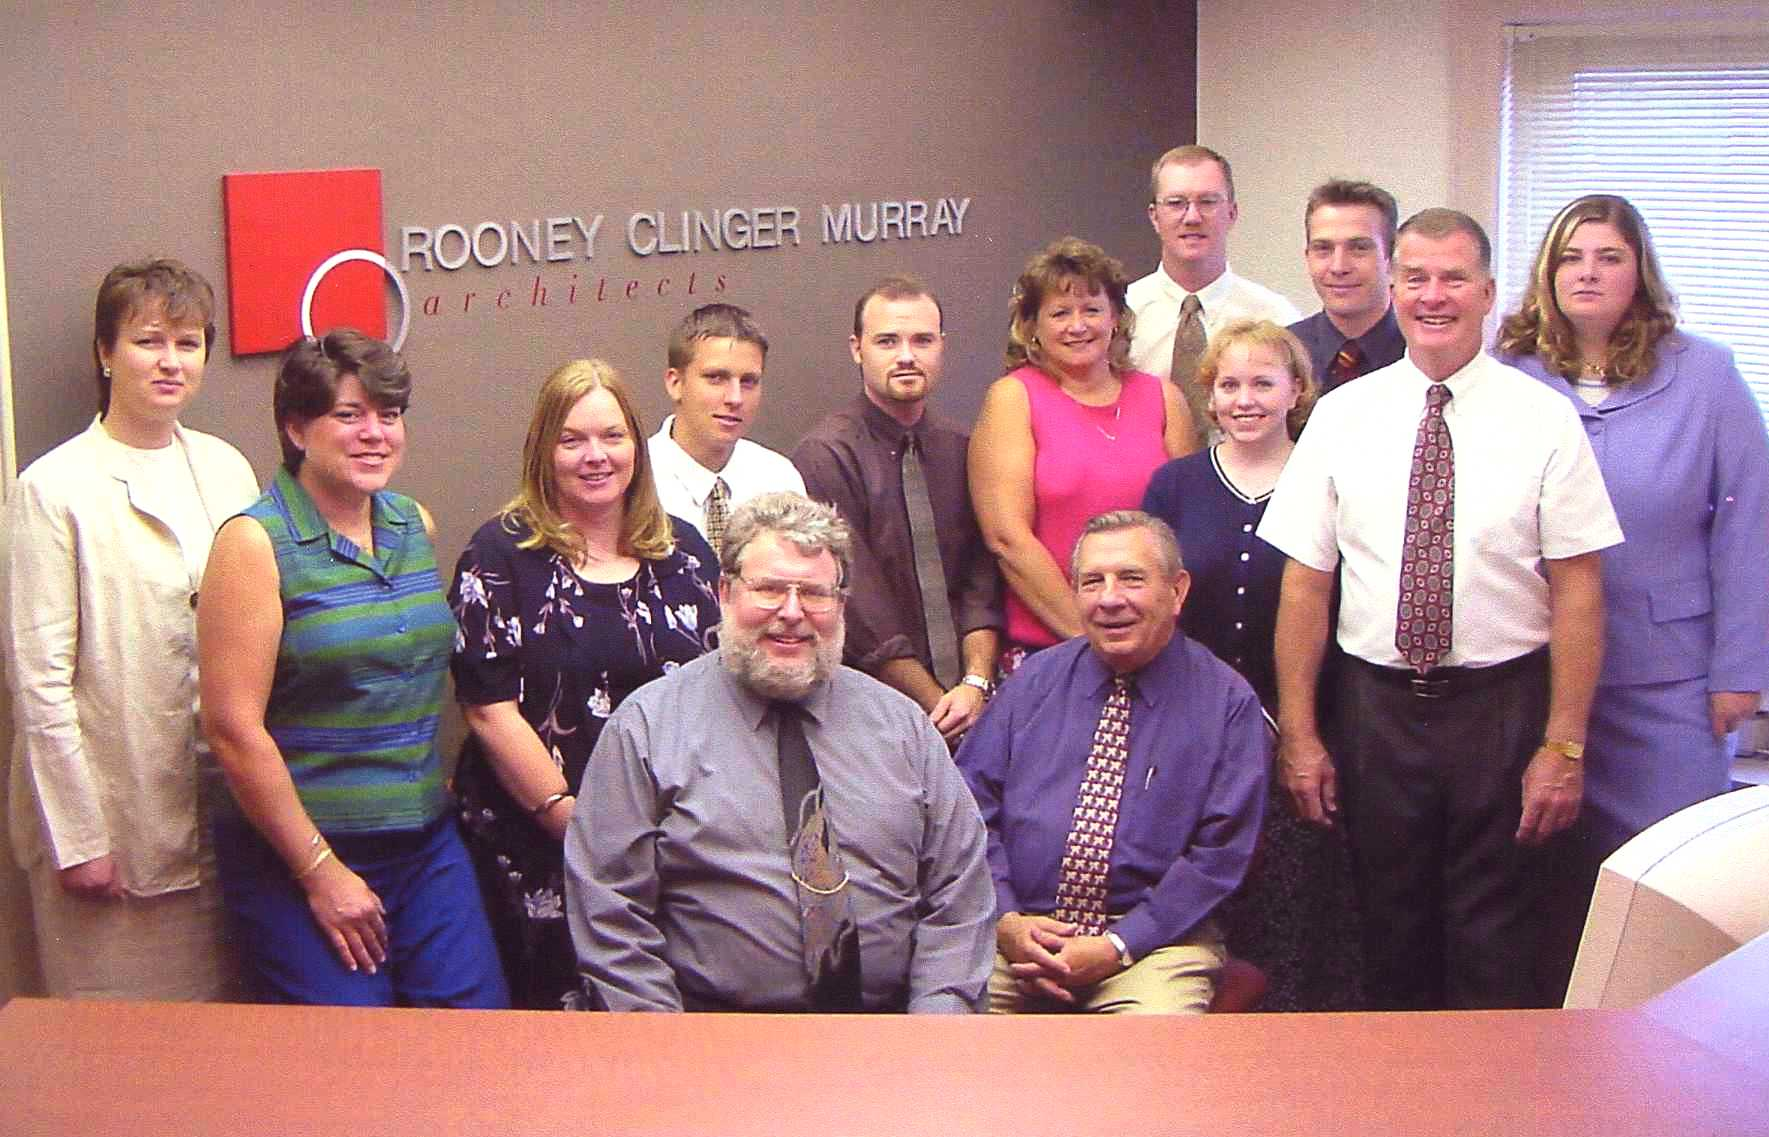 2002 Office Staff Picture.jpg